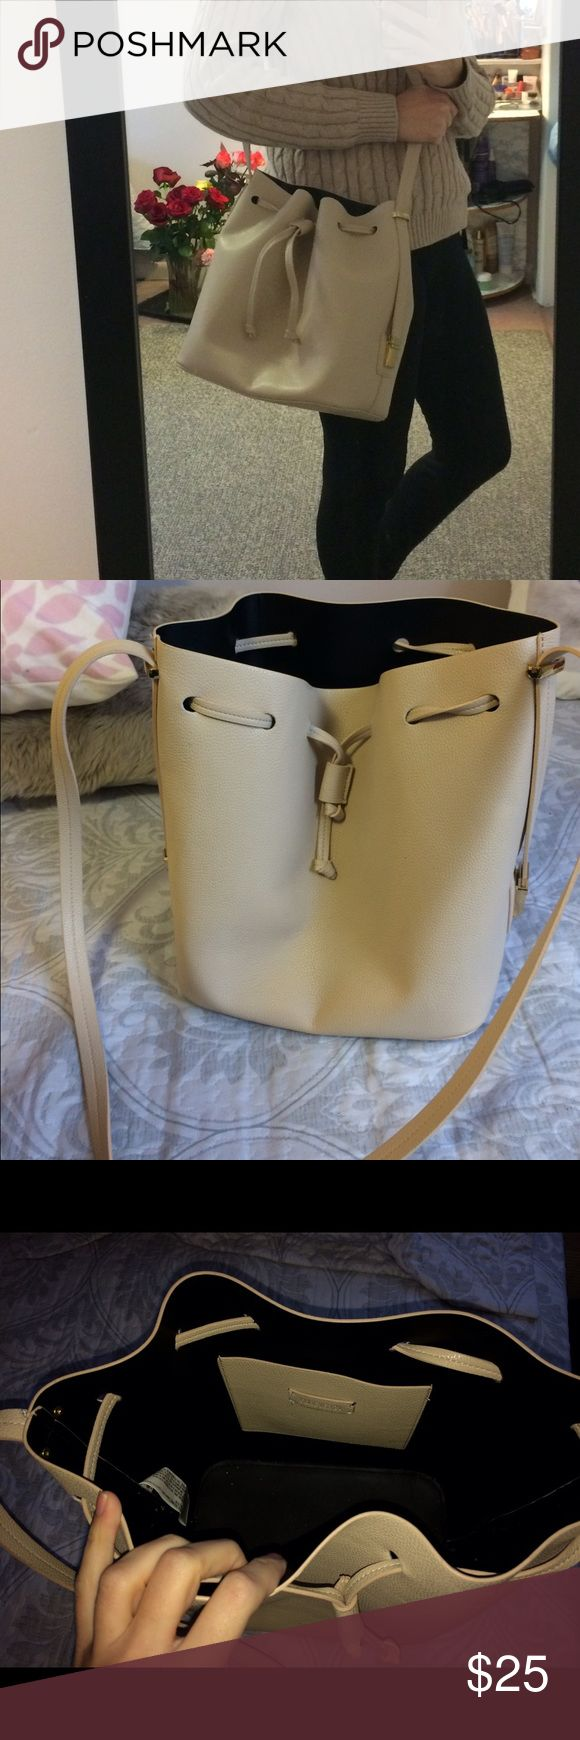 Forever 21 cream shoulder bag Spacious bag, very stylish. Worn once in excellent condition! Forever 21 Bags